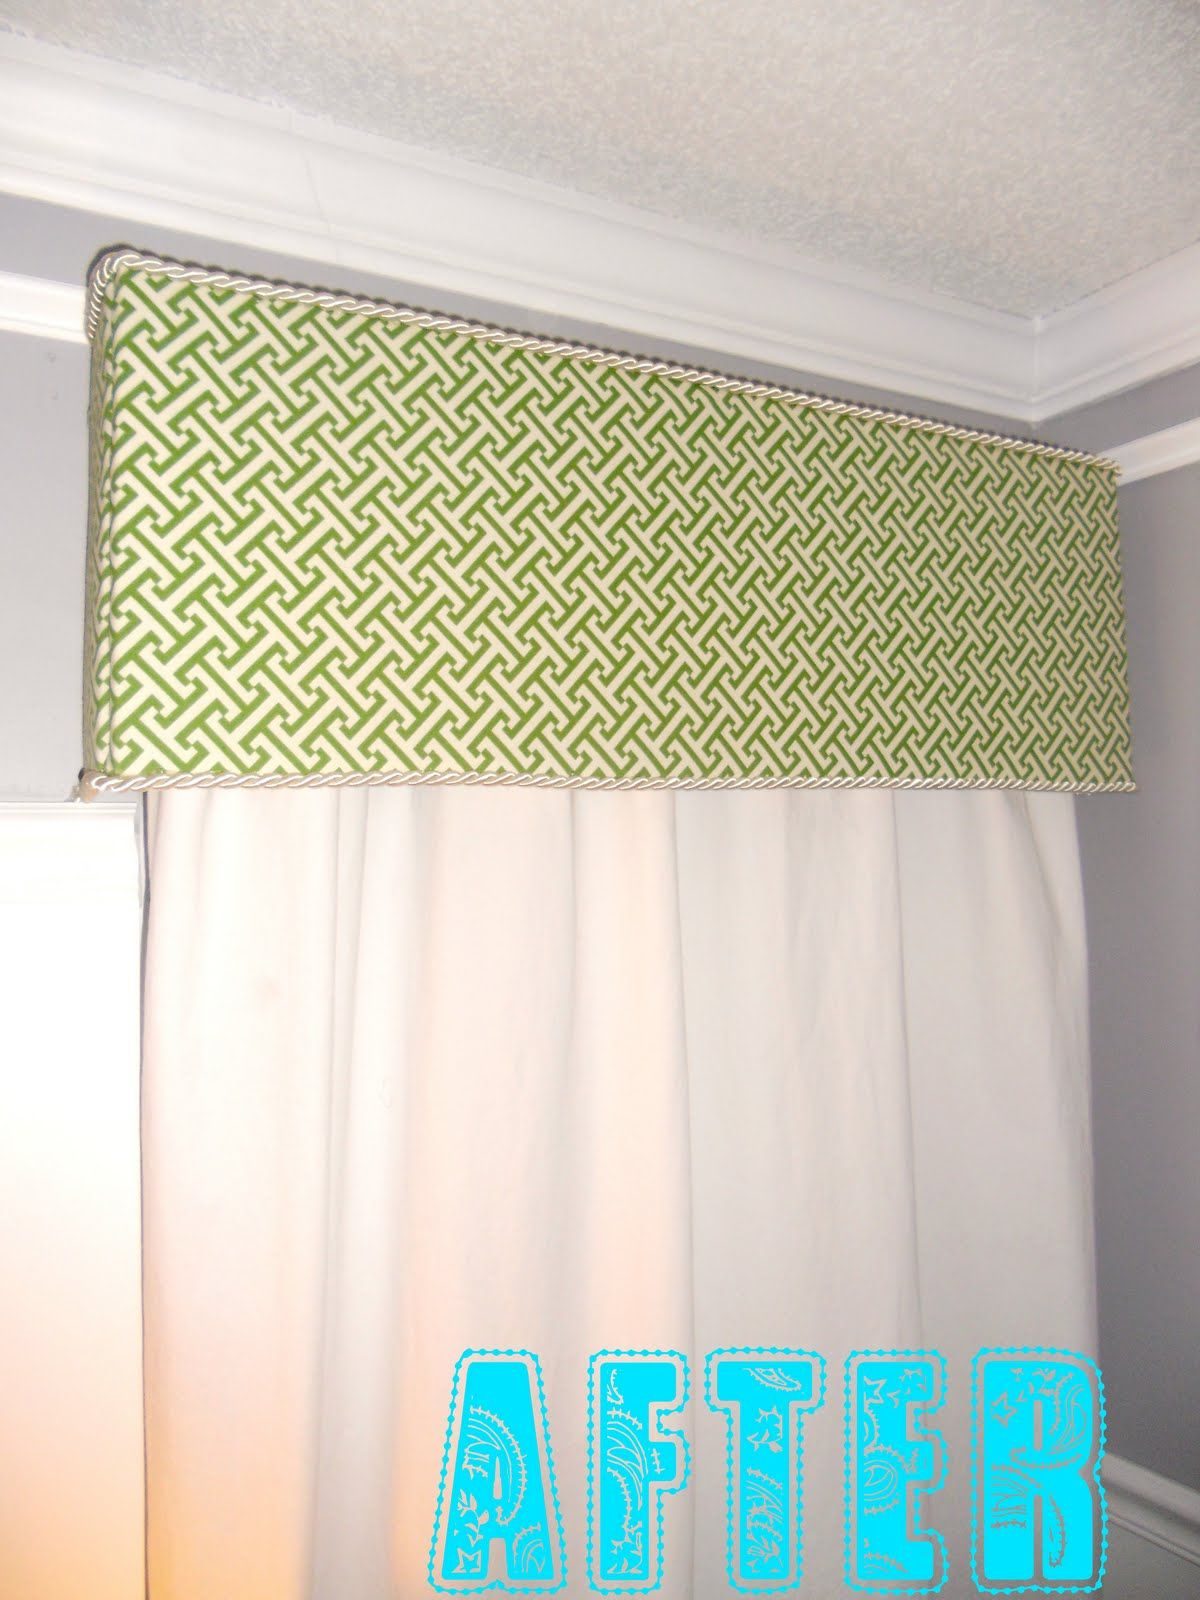 Window decor diy  brandi nell the southern belle new cornice boards for the bedroom